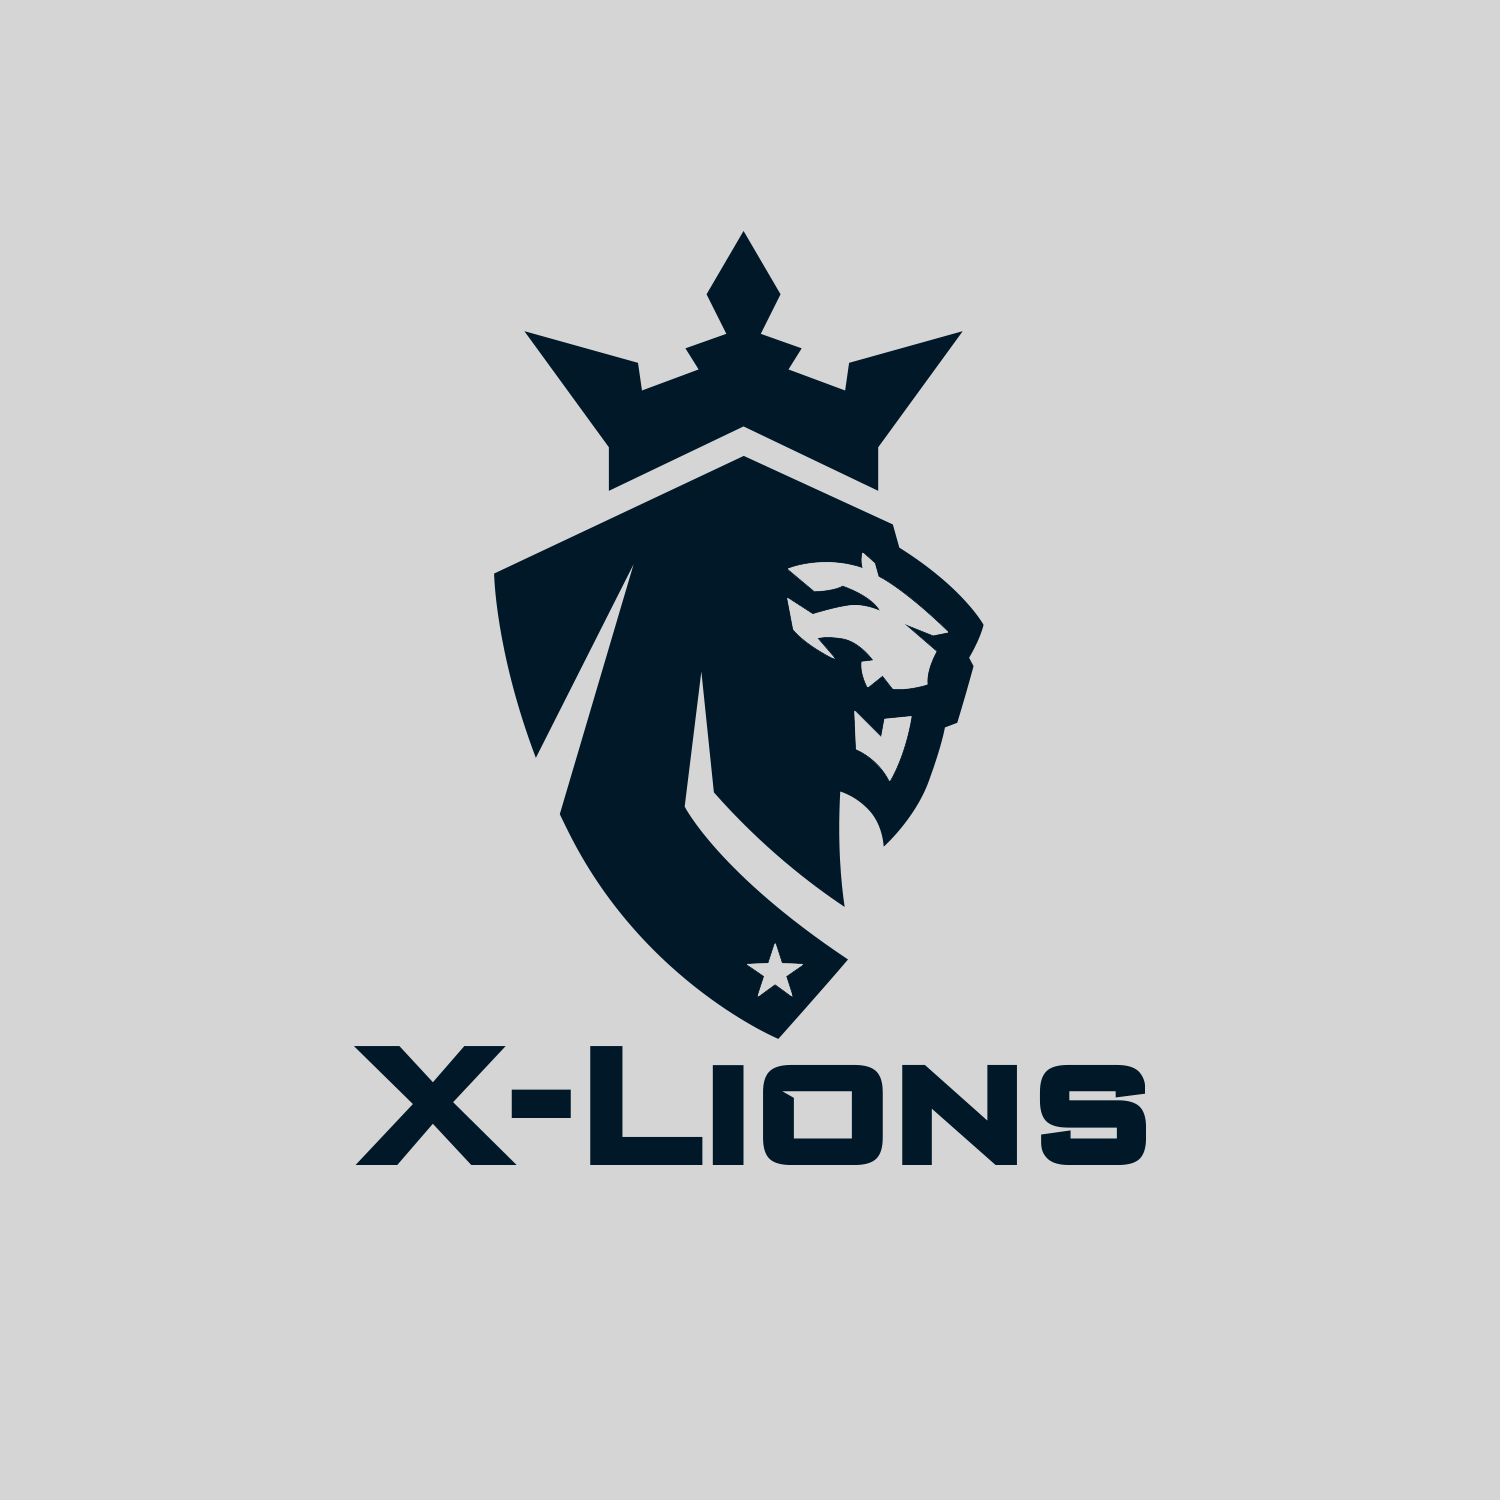 Create Your Clan Logo - 40 Fortnite Logo Ideas for Squads, Clans and Gamers